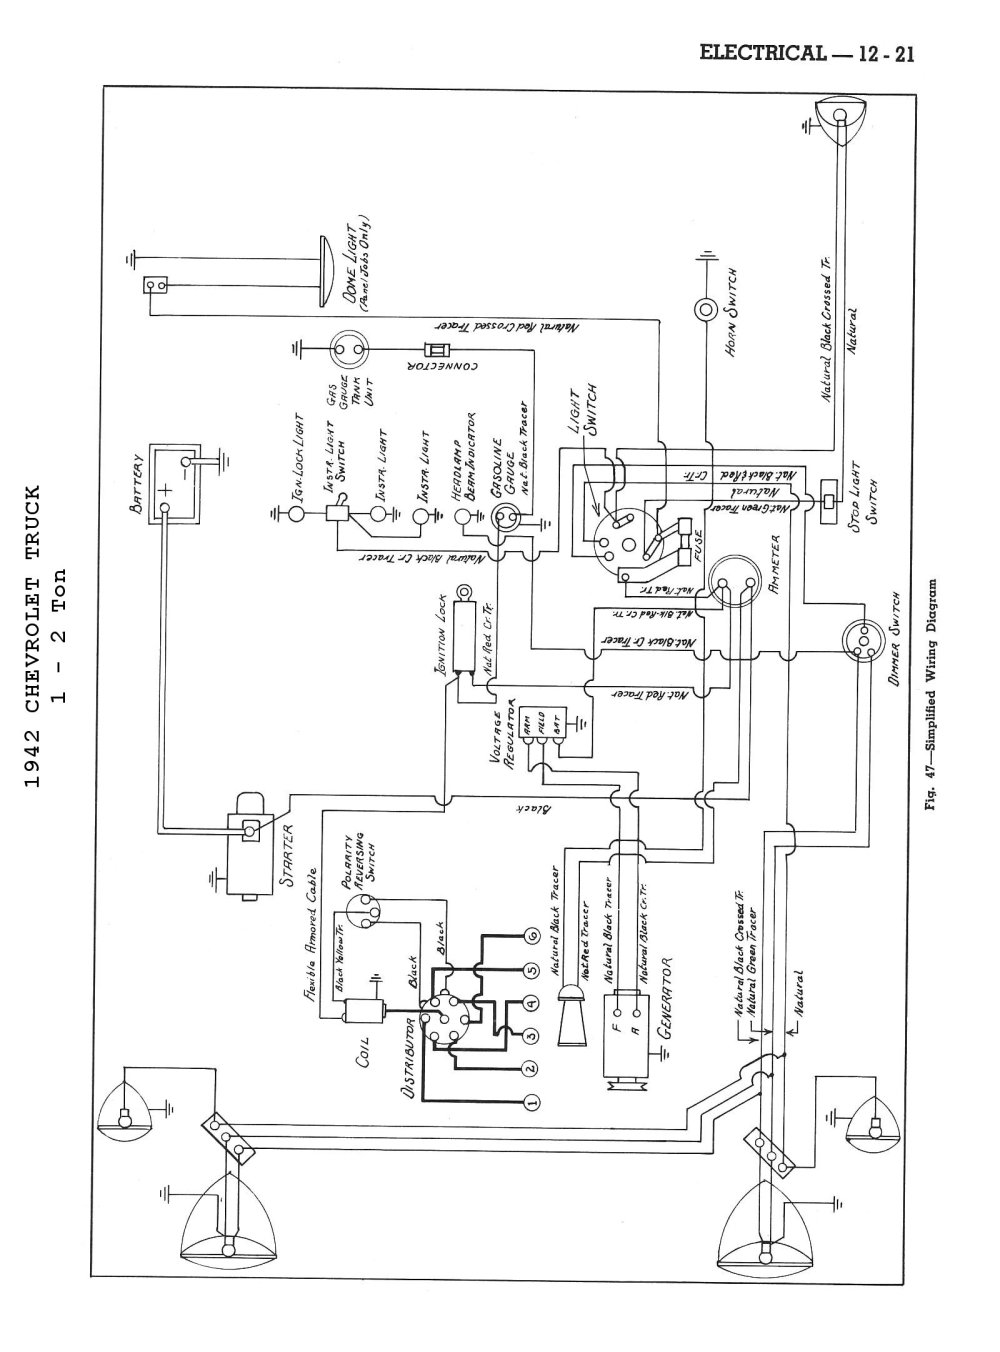 medium resolution of 46 ford wiring harness wiring diagram post 46 ford wiring diagram wiring library 46 ford wiring